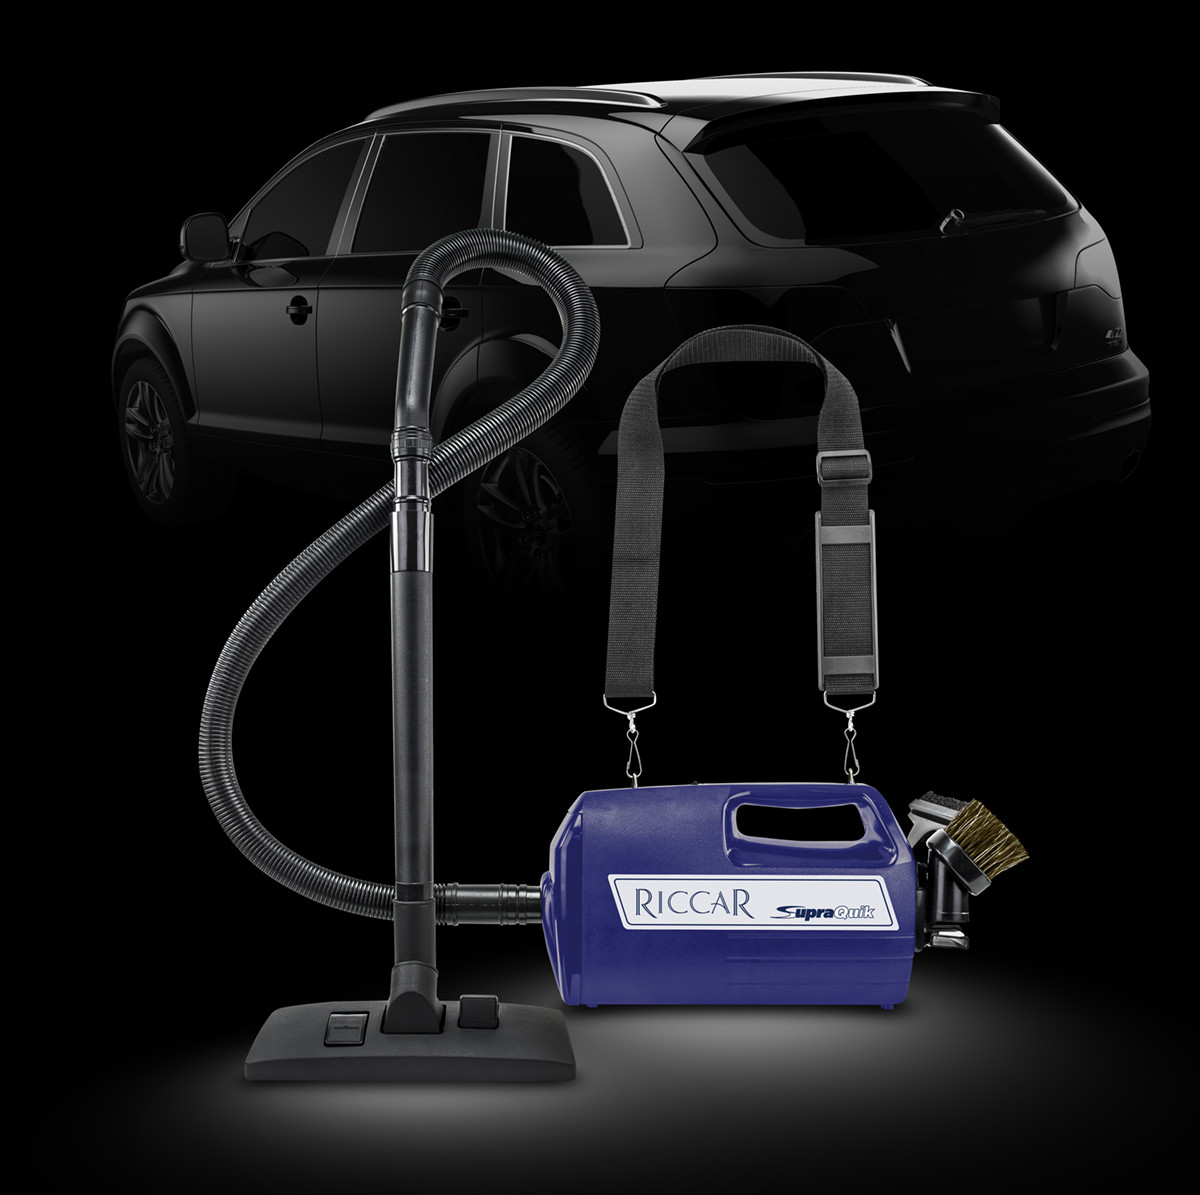 The Riccar SupraQuik is a handy vacuum for cleaning cars, minivans and anywhere else that's too difficult to clean with a full-size vacuum